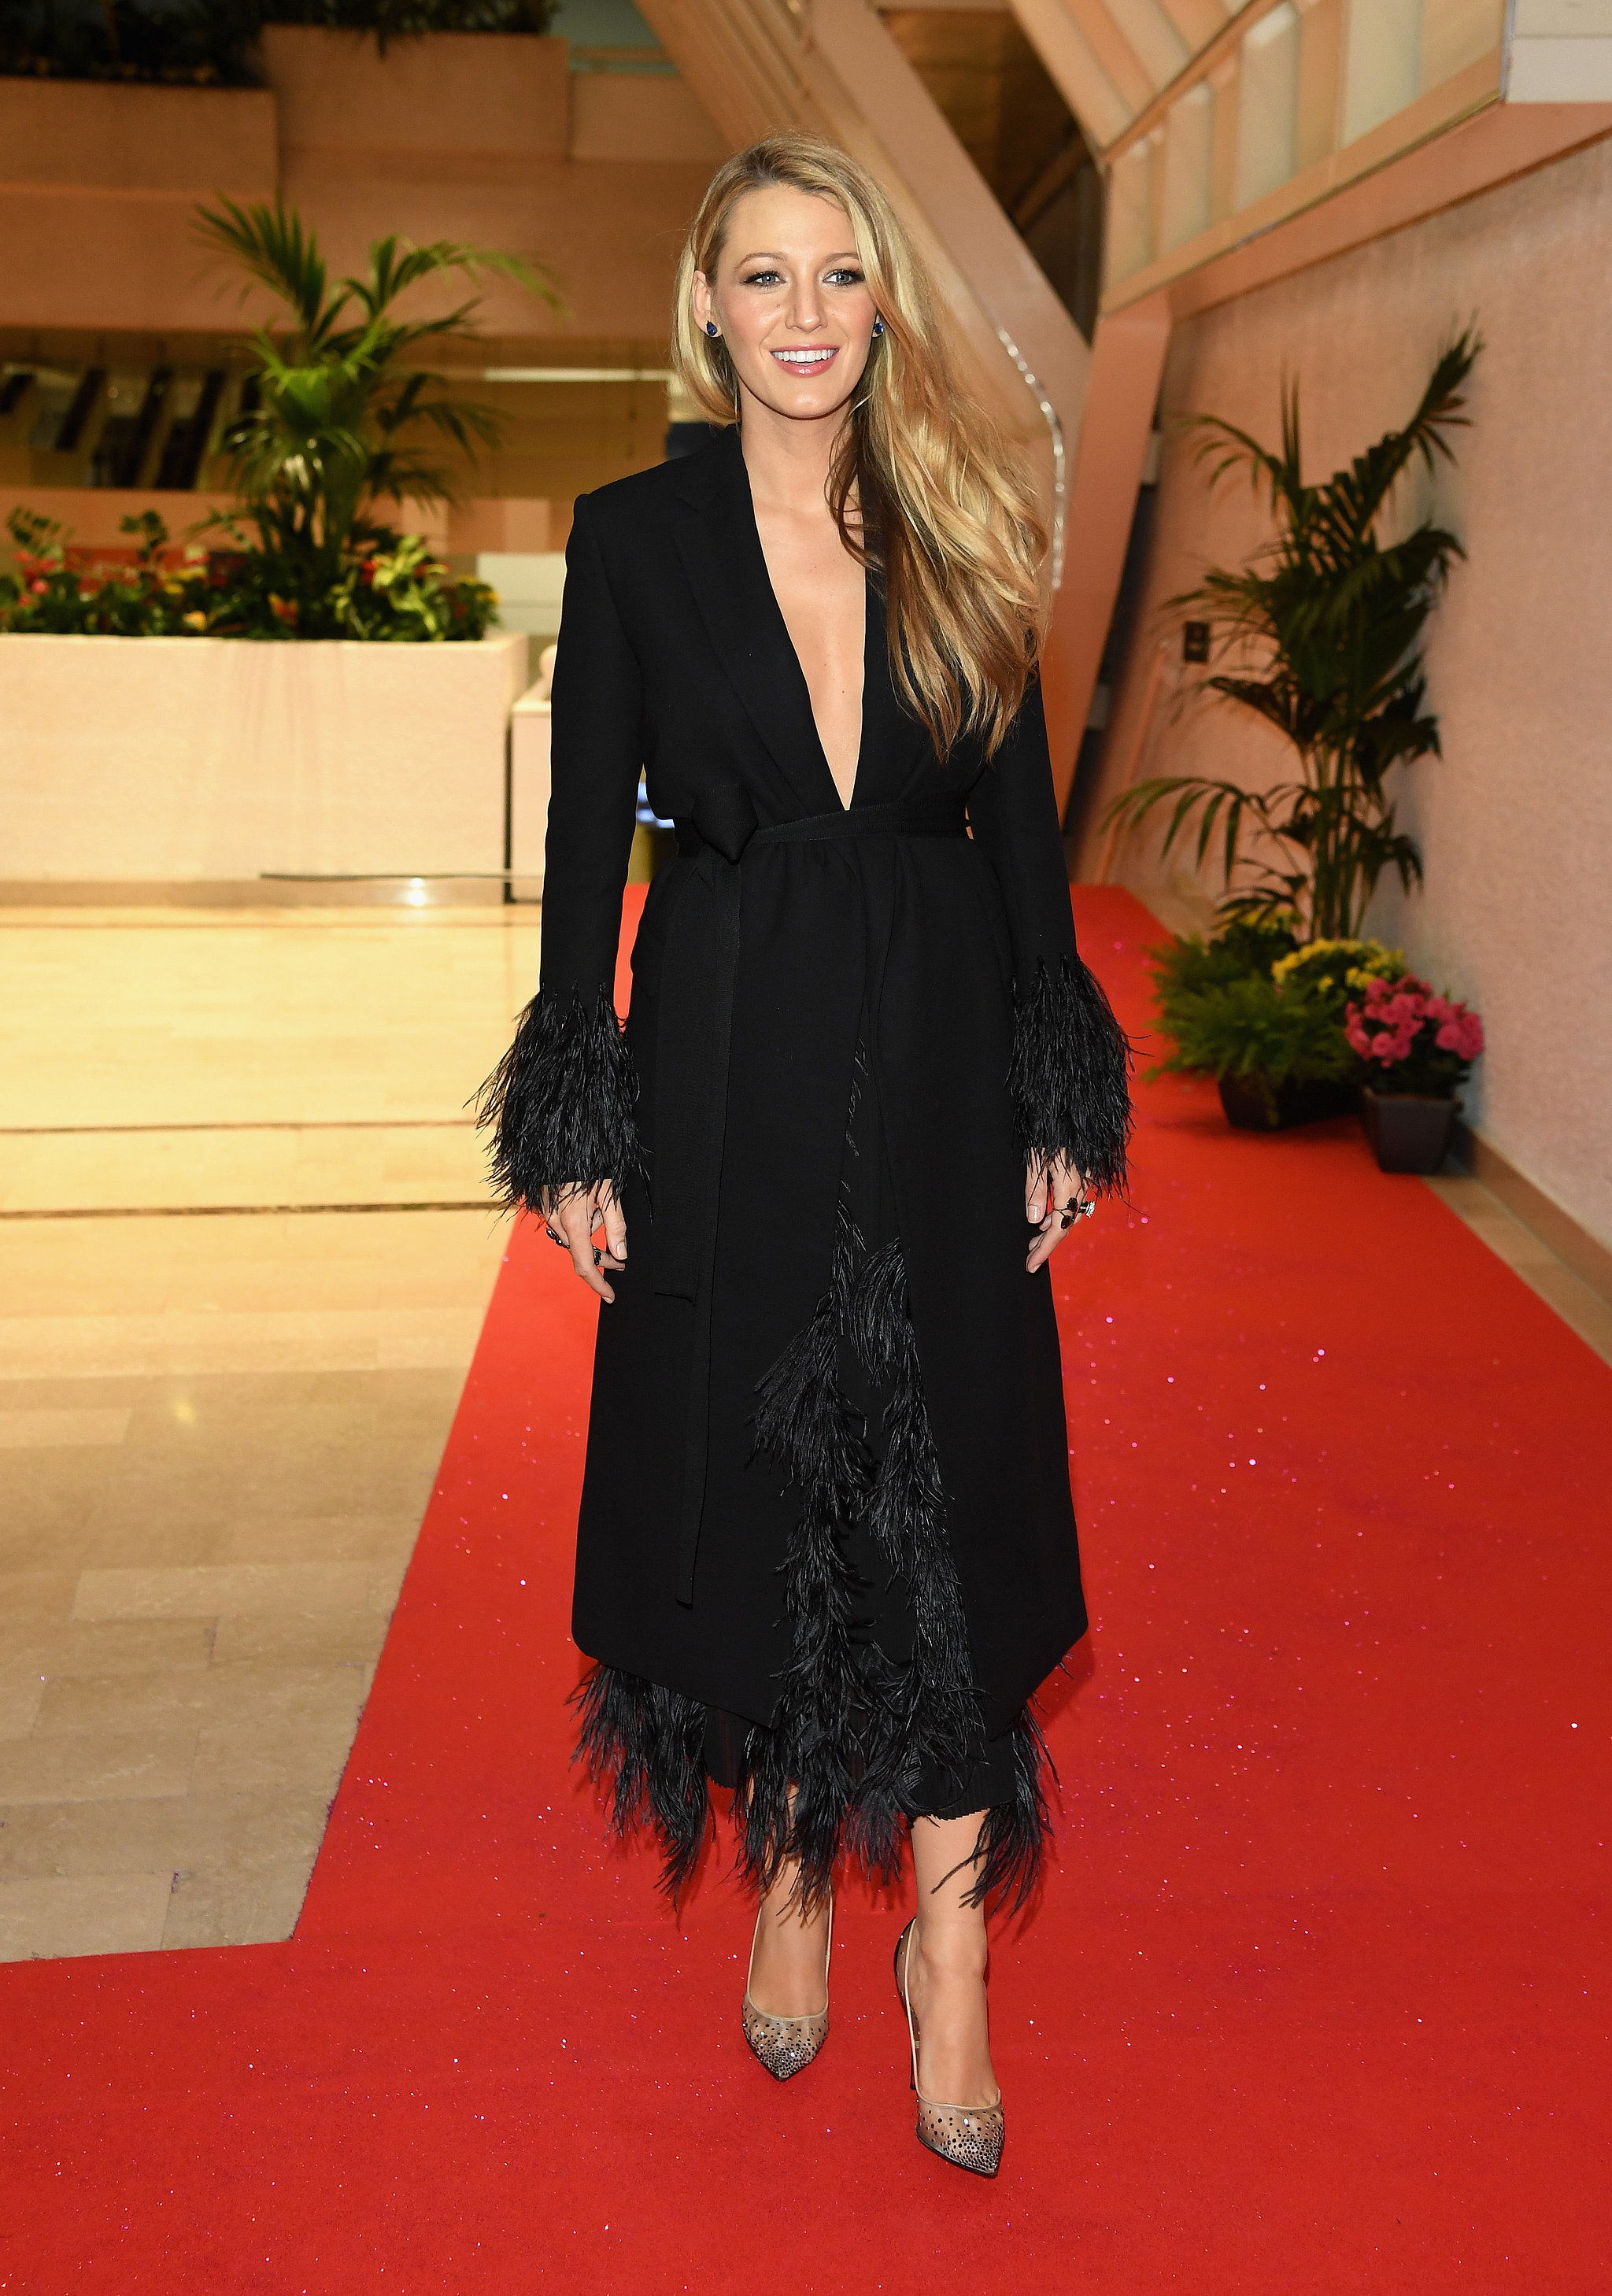 Blake-Lively-Feathered-Jacket-Cannes